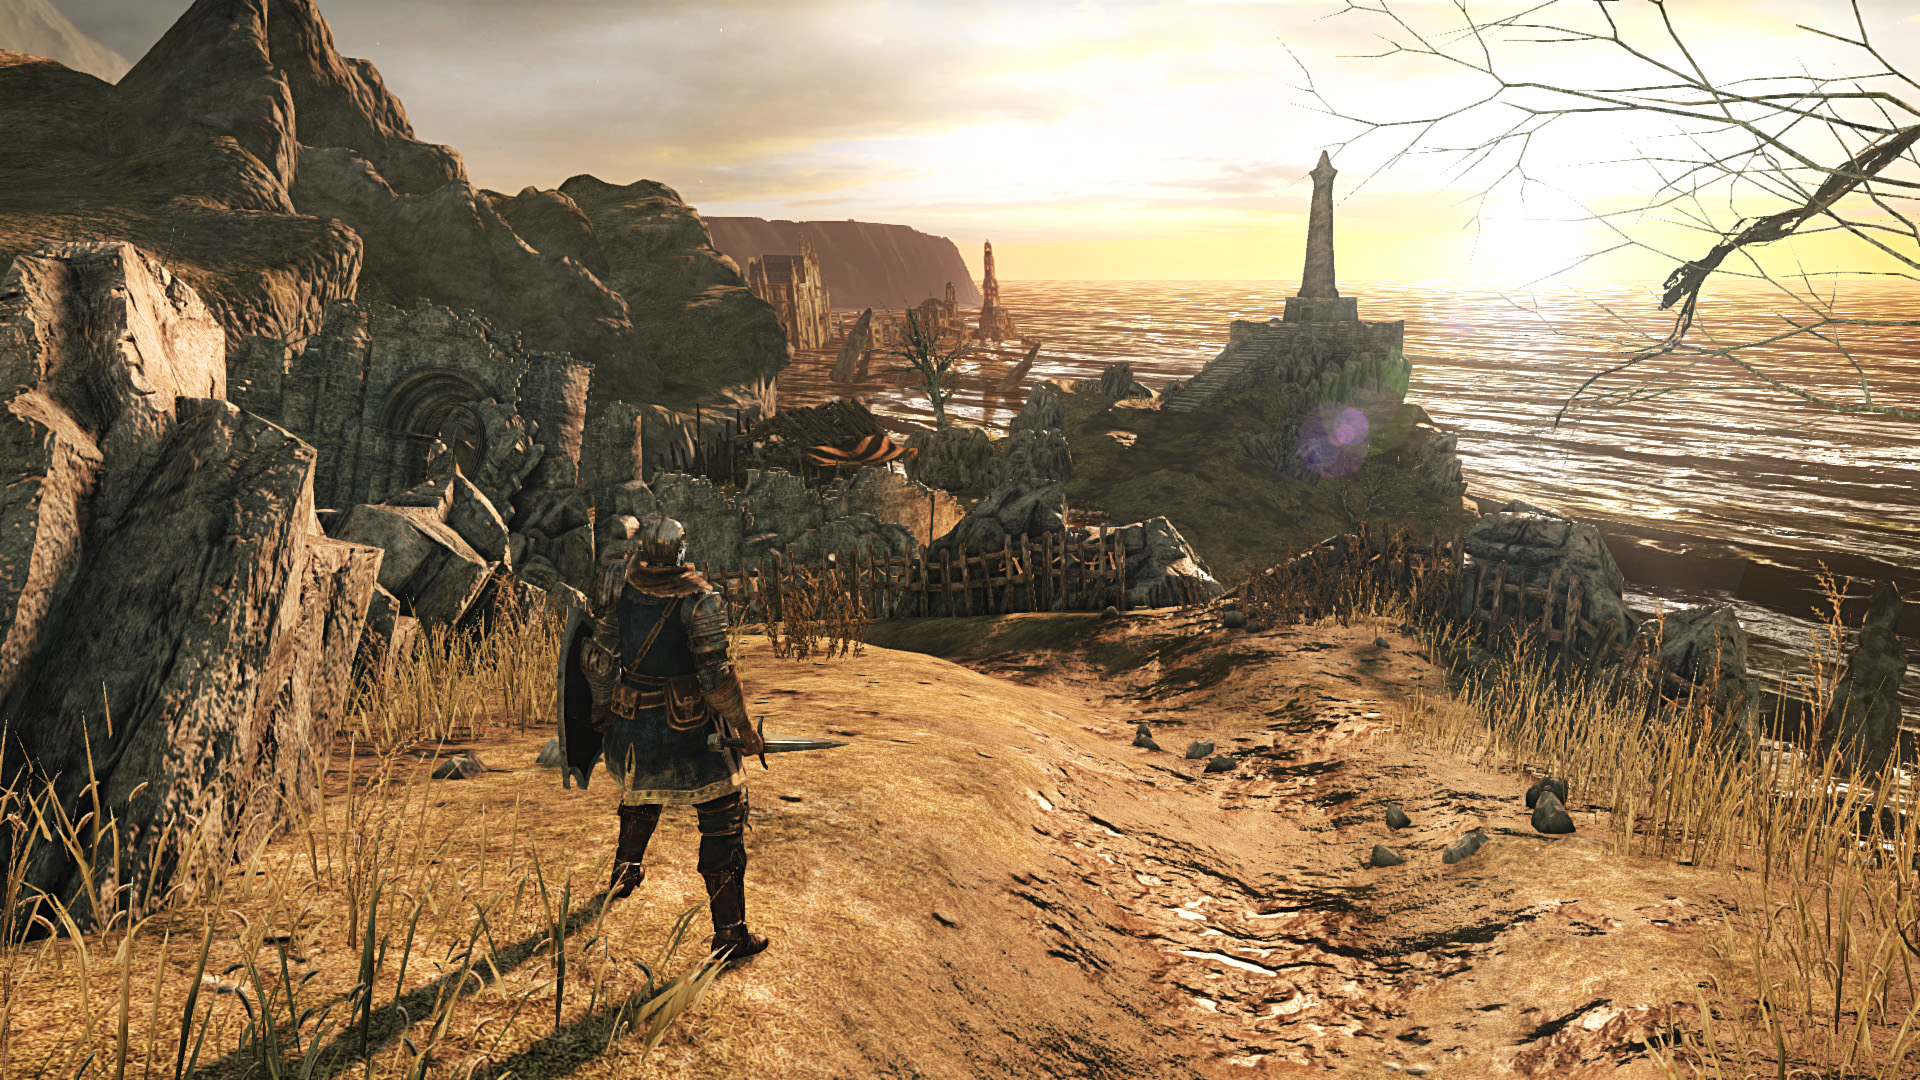 Dark Souls 2 PS4 Review - Scholar of the First Sin - A Familiar Pain